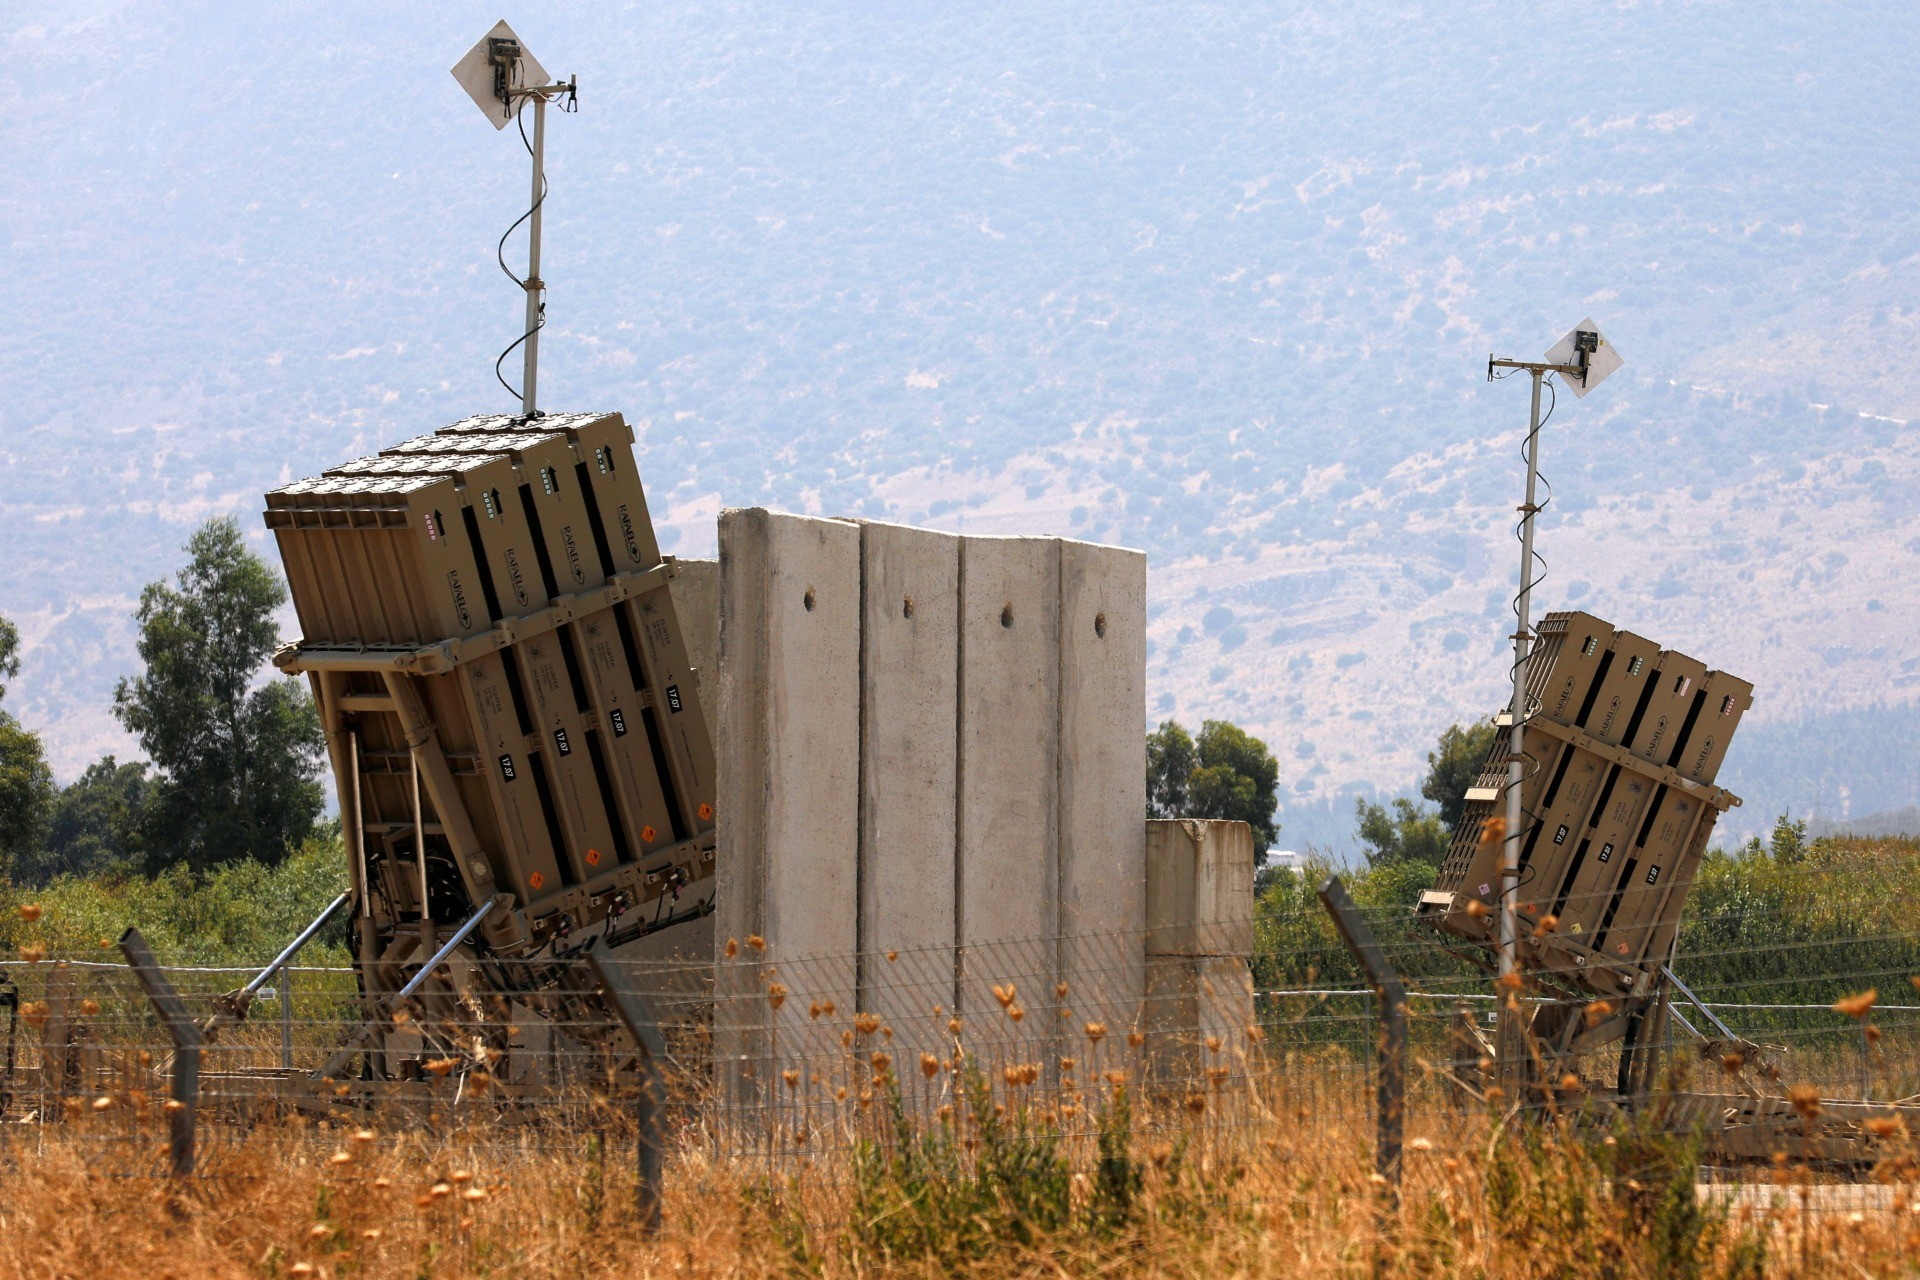 A picture taken on August 5, 2021, shows an Iron Dome defense system battery, designed to intercept and destroy incoming short-range rockets and artillery shells, in the Hula Valley in northern Israel near the border with Lebanon. - The Israeli air force said it carried out its first air strikes on neighbouring Lebanon in seven years today following a second day of rocket fire across the border. (Photo by JALAA MAREY / AFP) (Photo by JALAA MAREY/AFP via Getty Images)